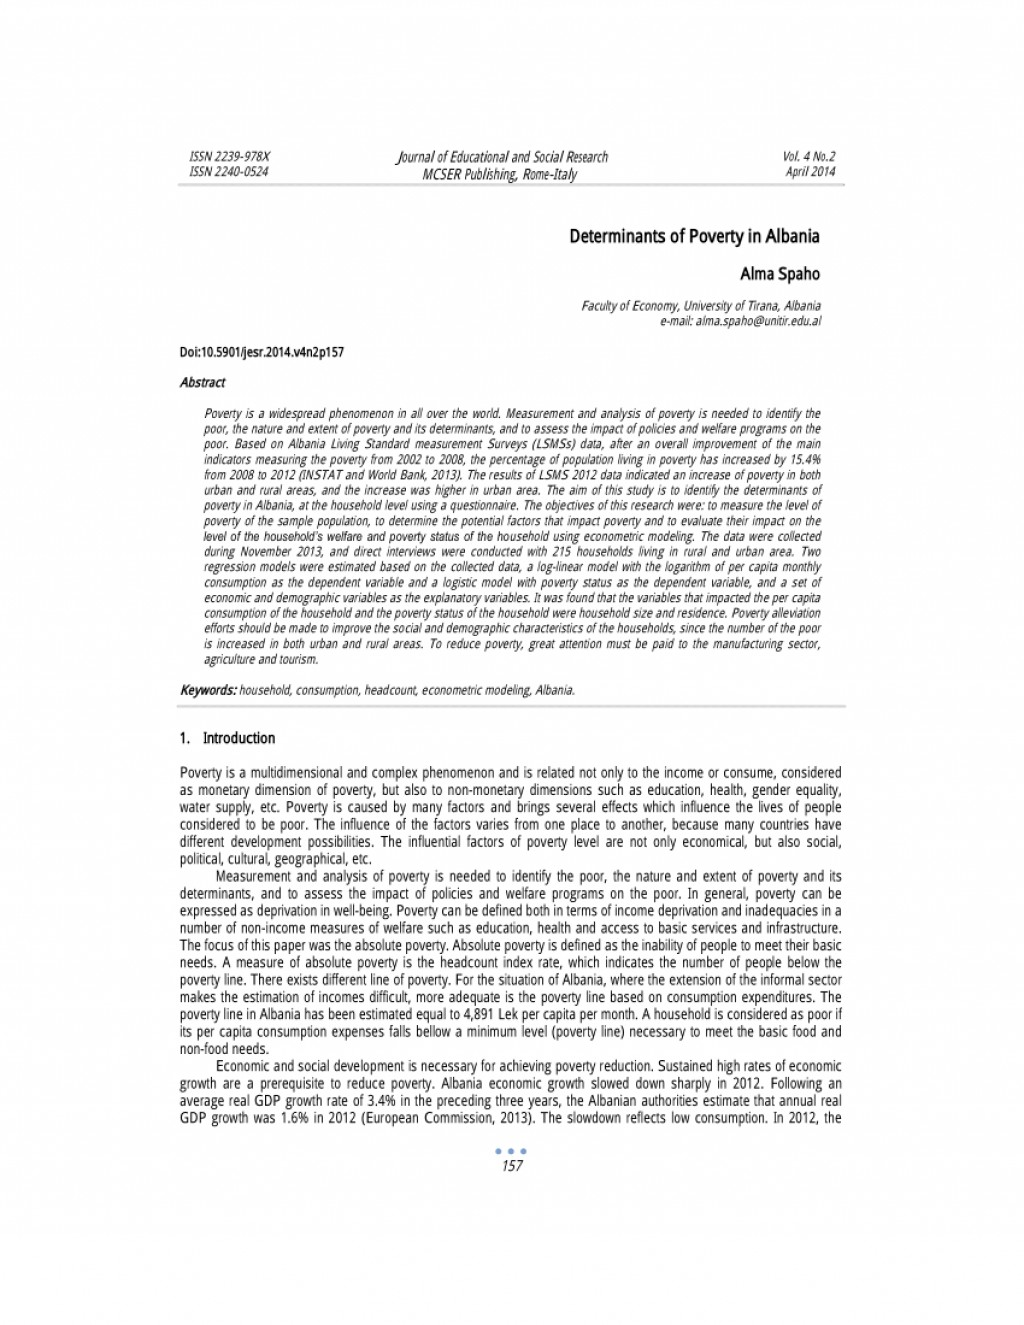 006 Research Paper Largepreview Poverty In The Philippines Remarkable Abstract Large